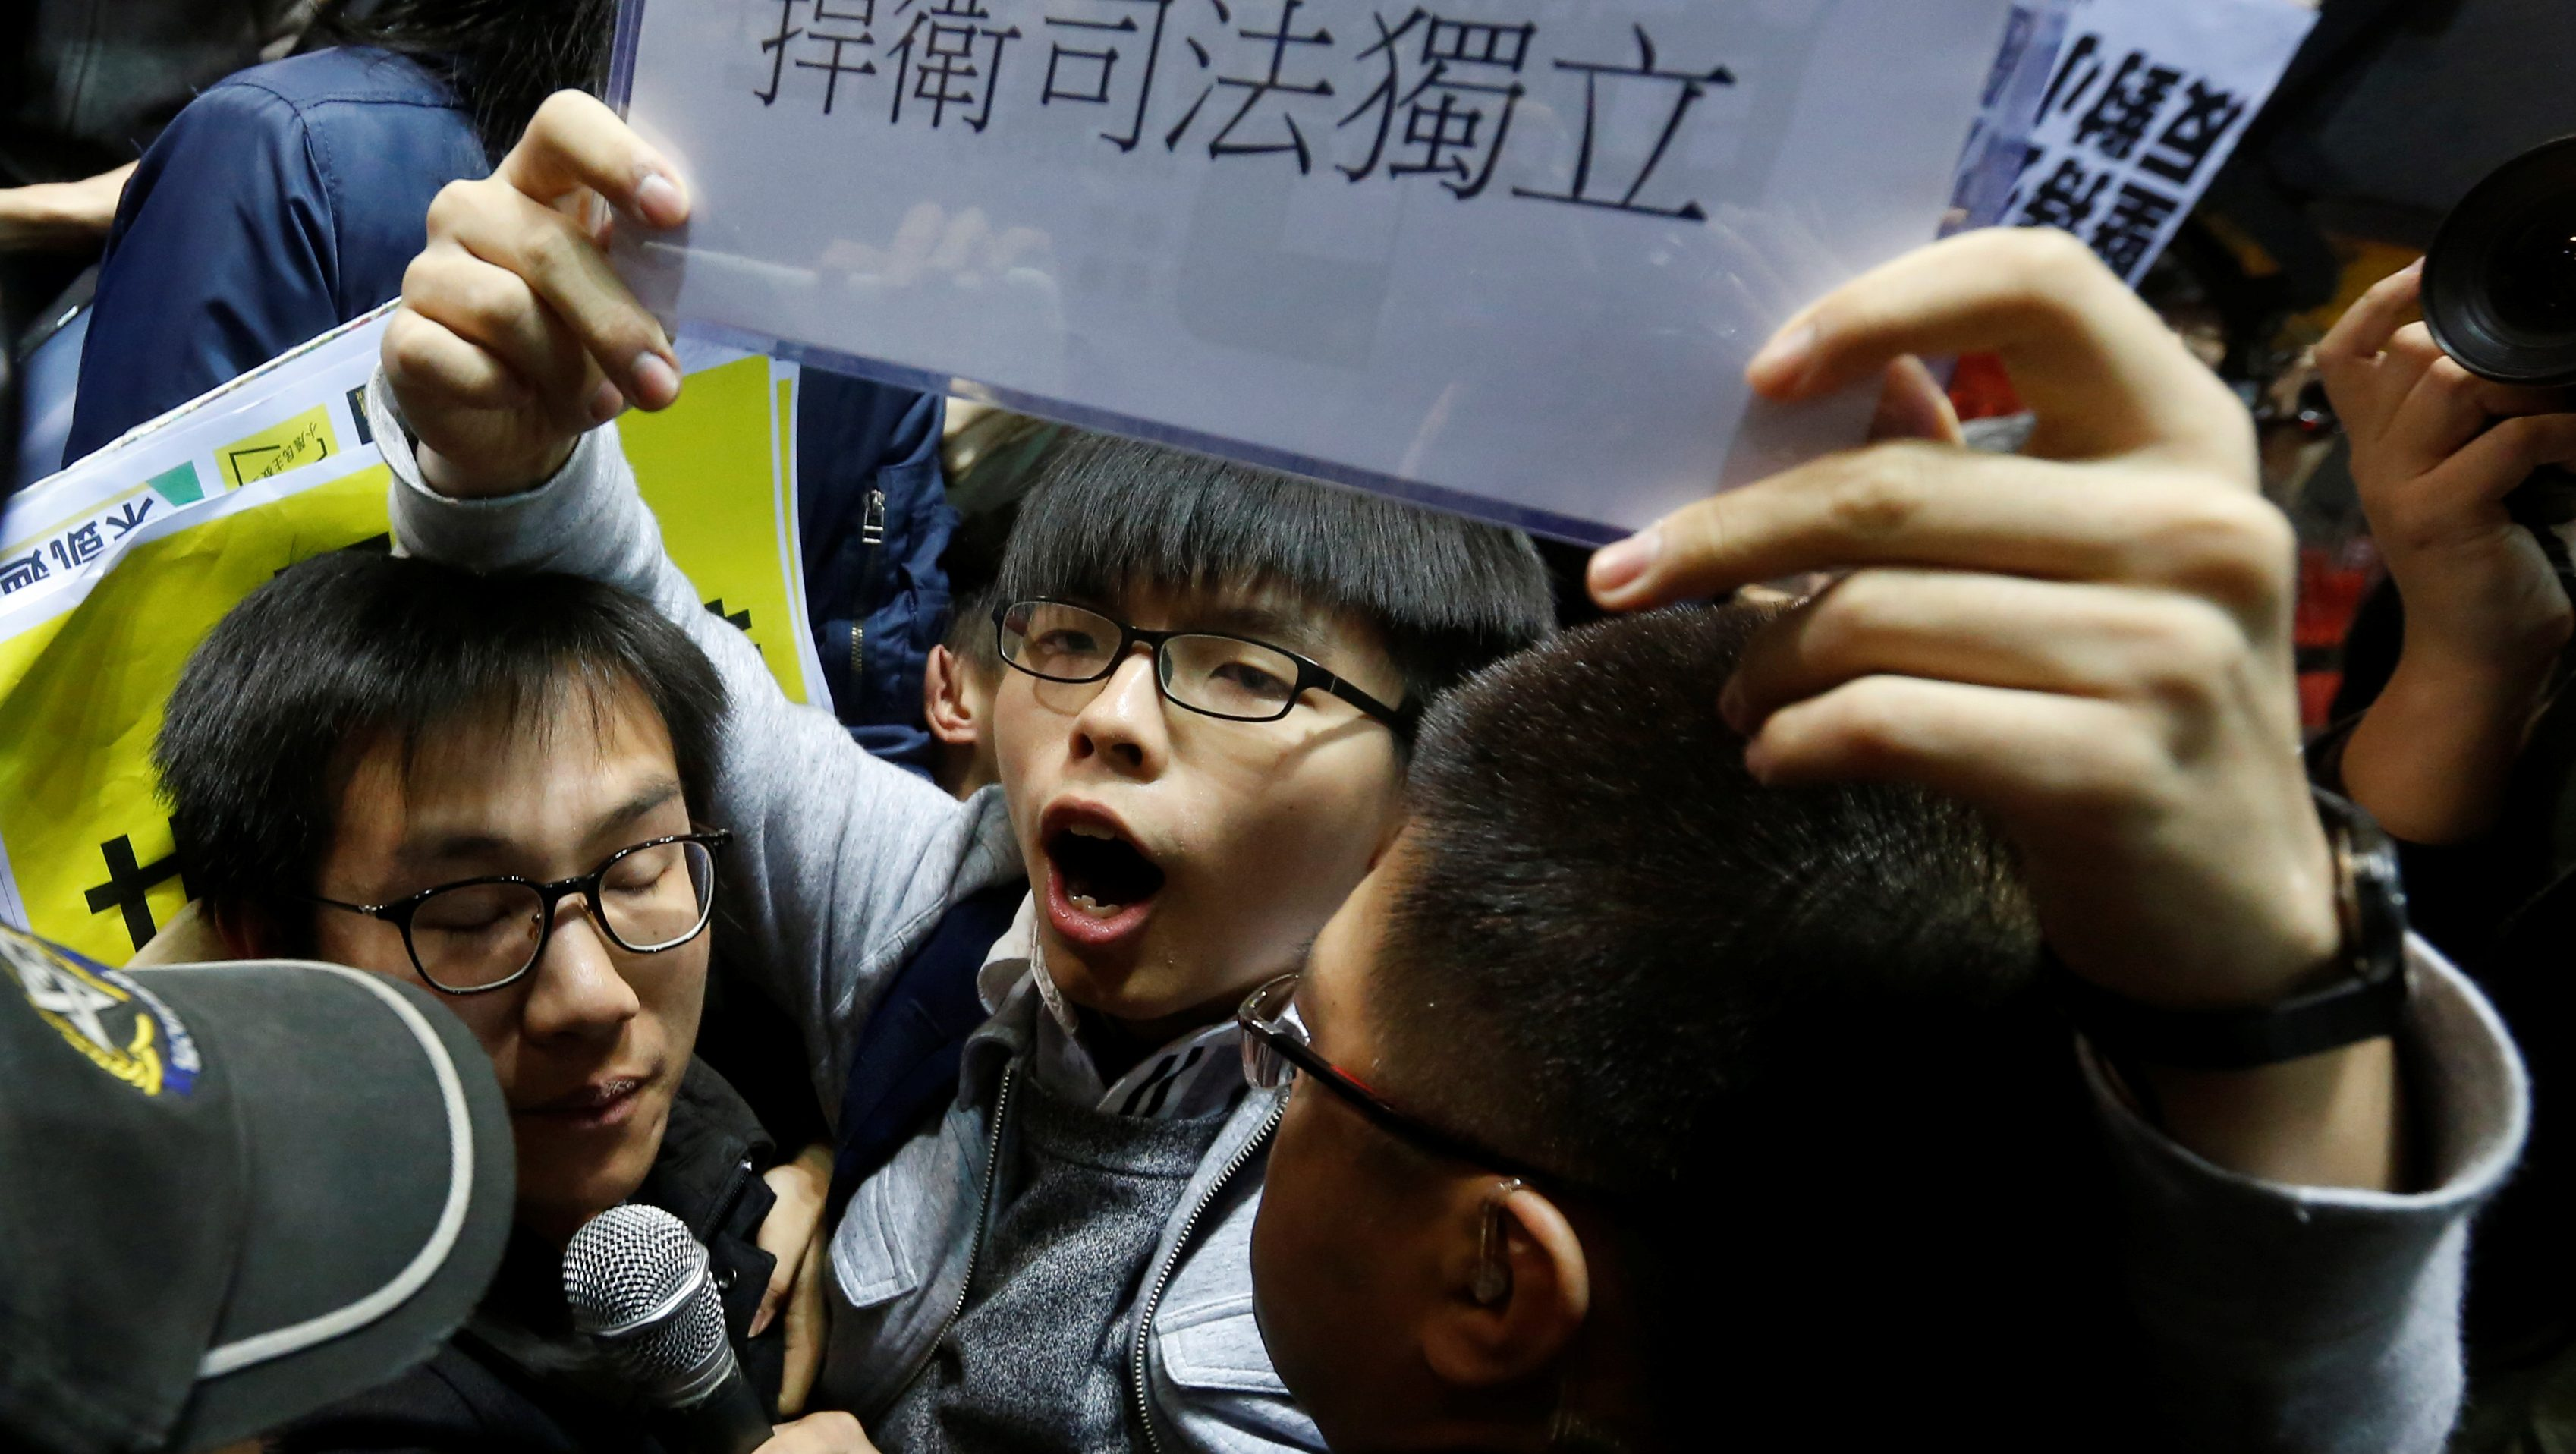 """Student leader Joshua Wong shouts and holds up a sign reading """"defend judicial independence"""" during a confrontation with security guards at a news conference held by former Chief Secretary and Chief Executive election candidate Carrie Lam in Hong Kong, China February 27, 2017. REUTERS/Bobby Yip TPX IMAGES OF THE DAY - RTS10L0D"""